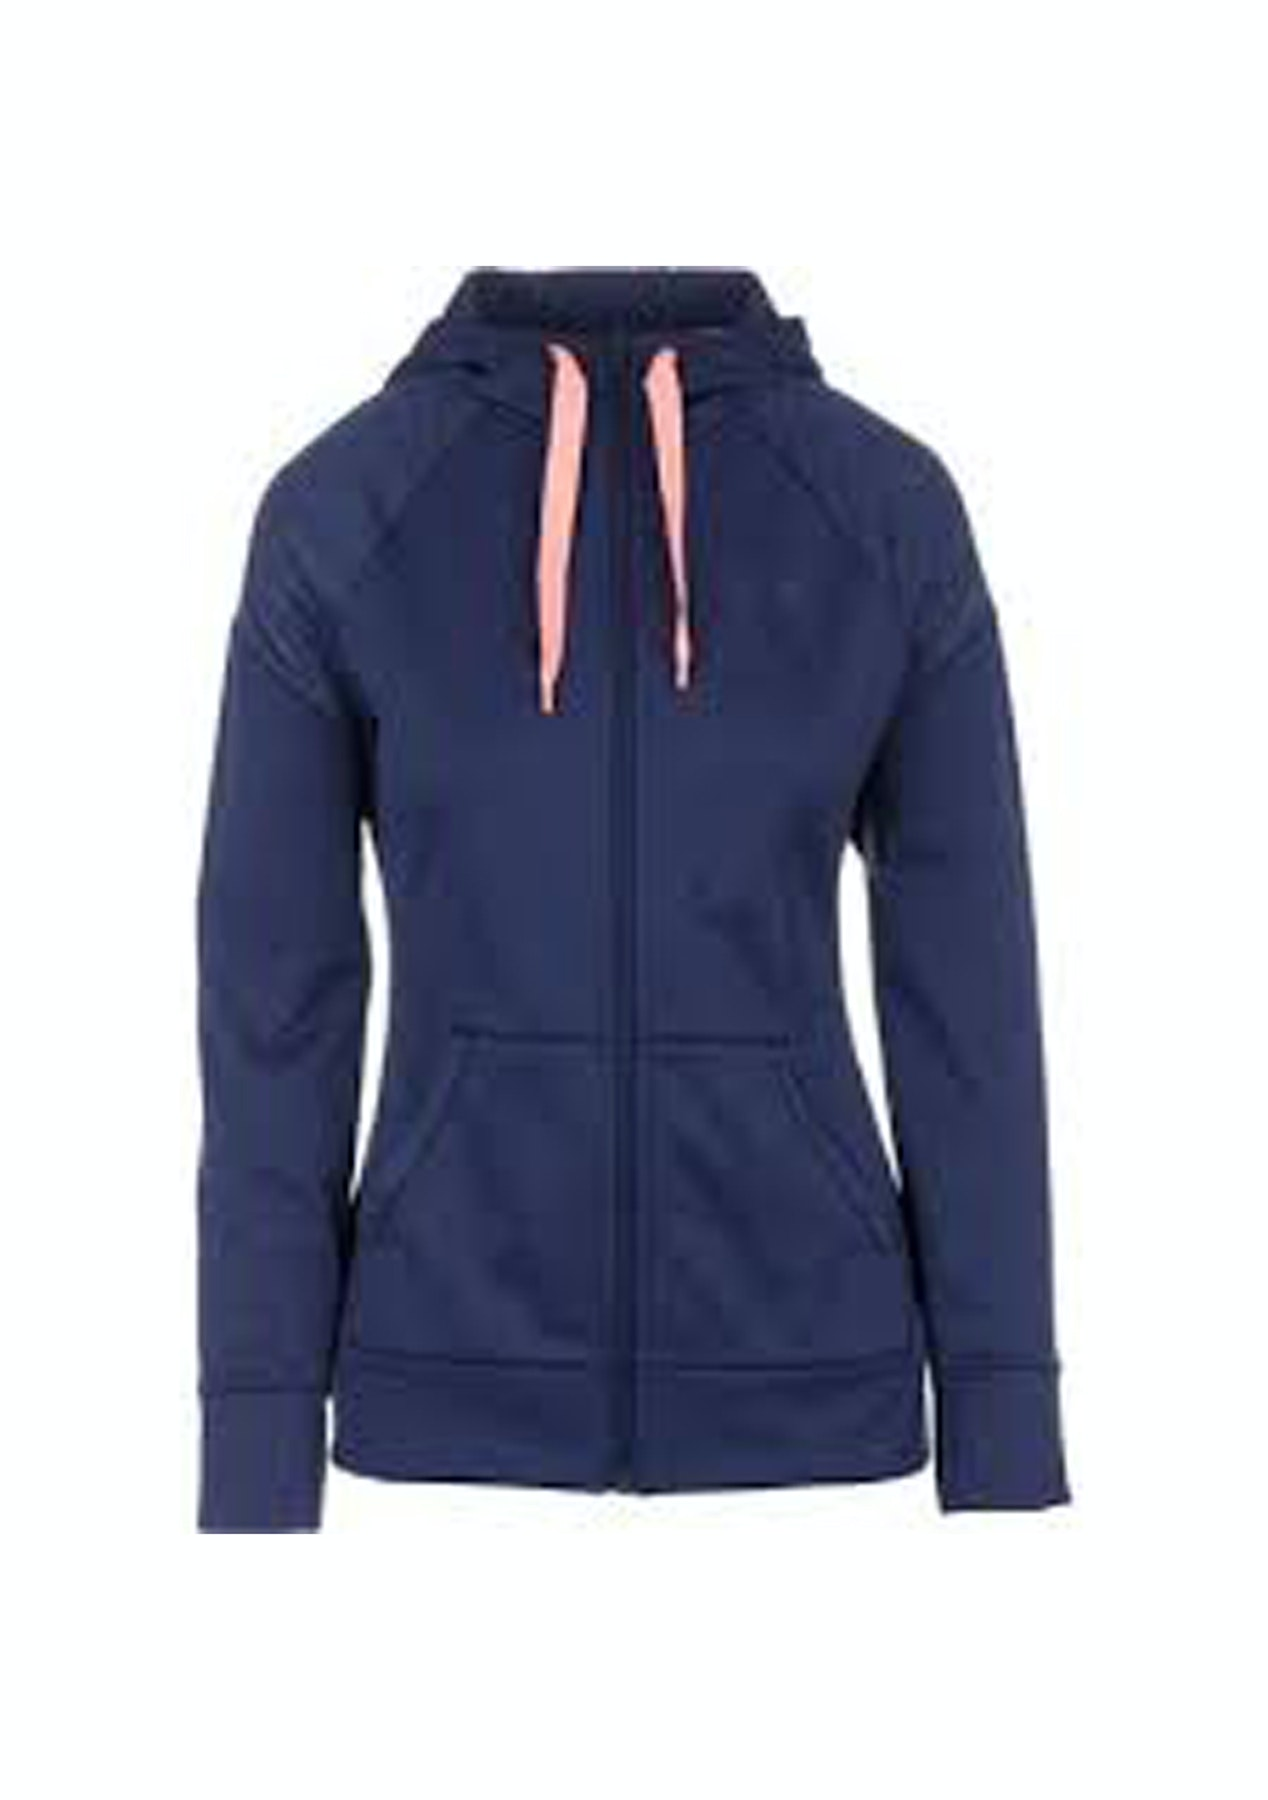 The North Face - Suprema Full Zip Hoodie Patriot Blue - Womens - Up to 50%  off The North Face - Onceit 8e15d1d5be